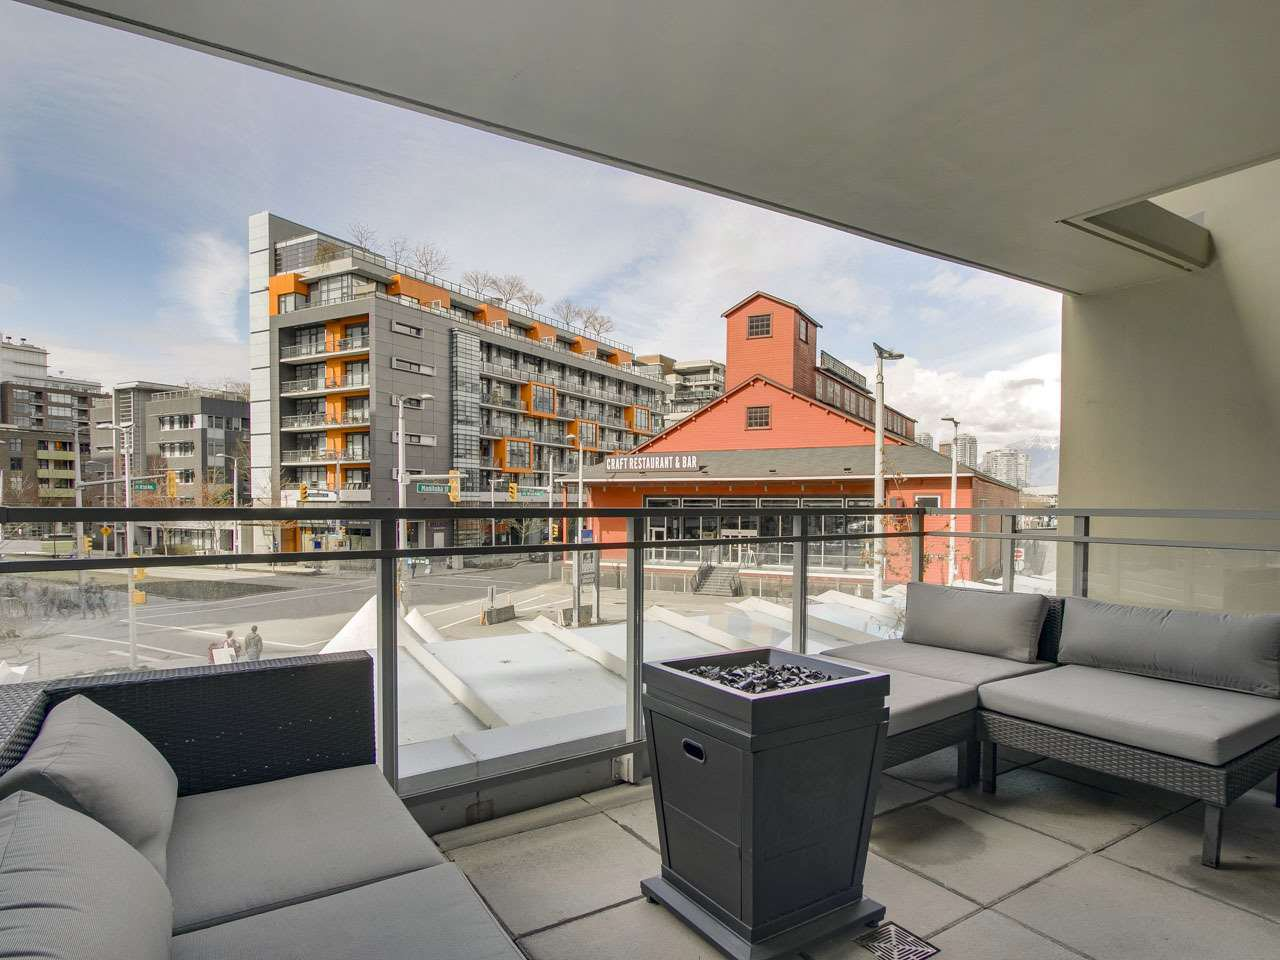 Main Photo: 205 88 W 1ST AVENUE in Vancouver: False Creek Condo for sale (Vancouver West)  : MLS®# R2149977